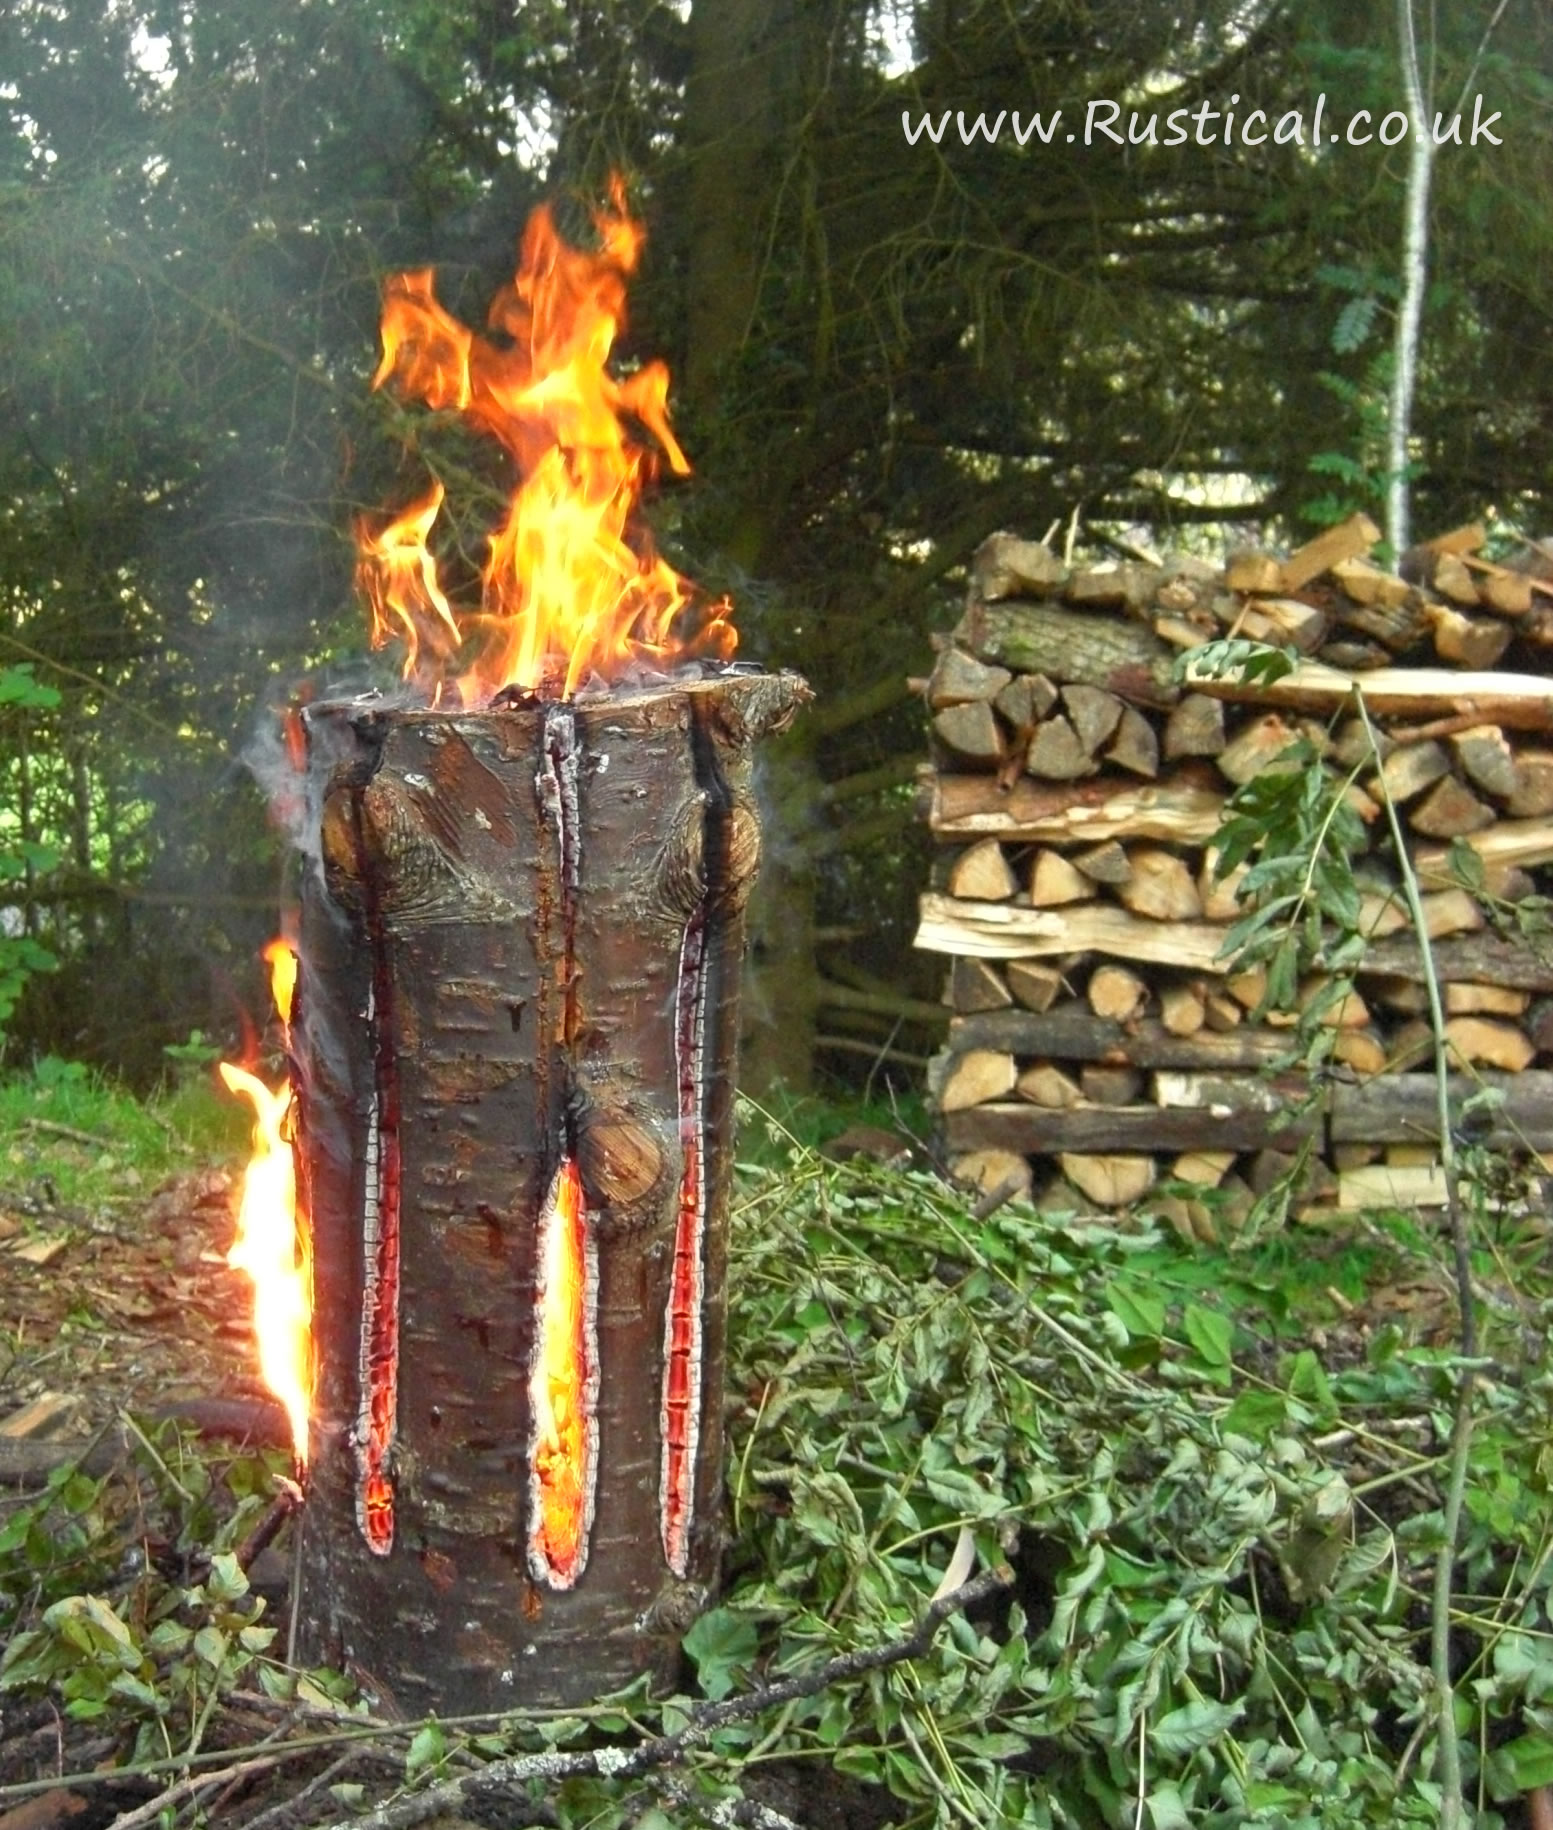 A lit 'Fire Dragon' Swedish Candle campfire alternative